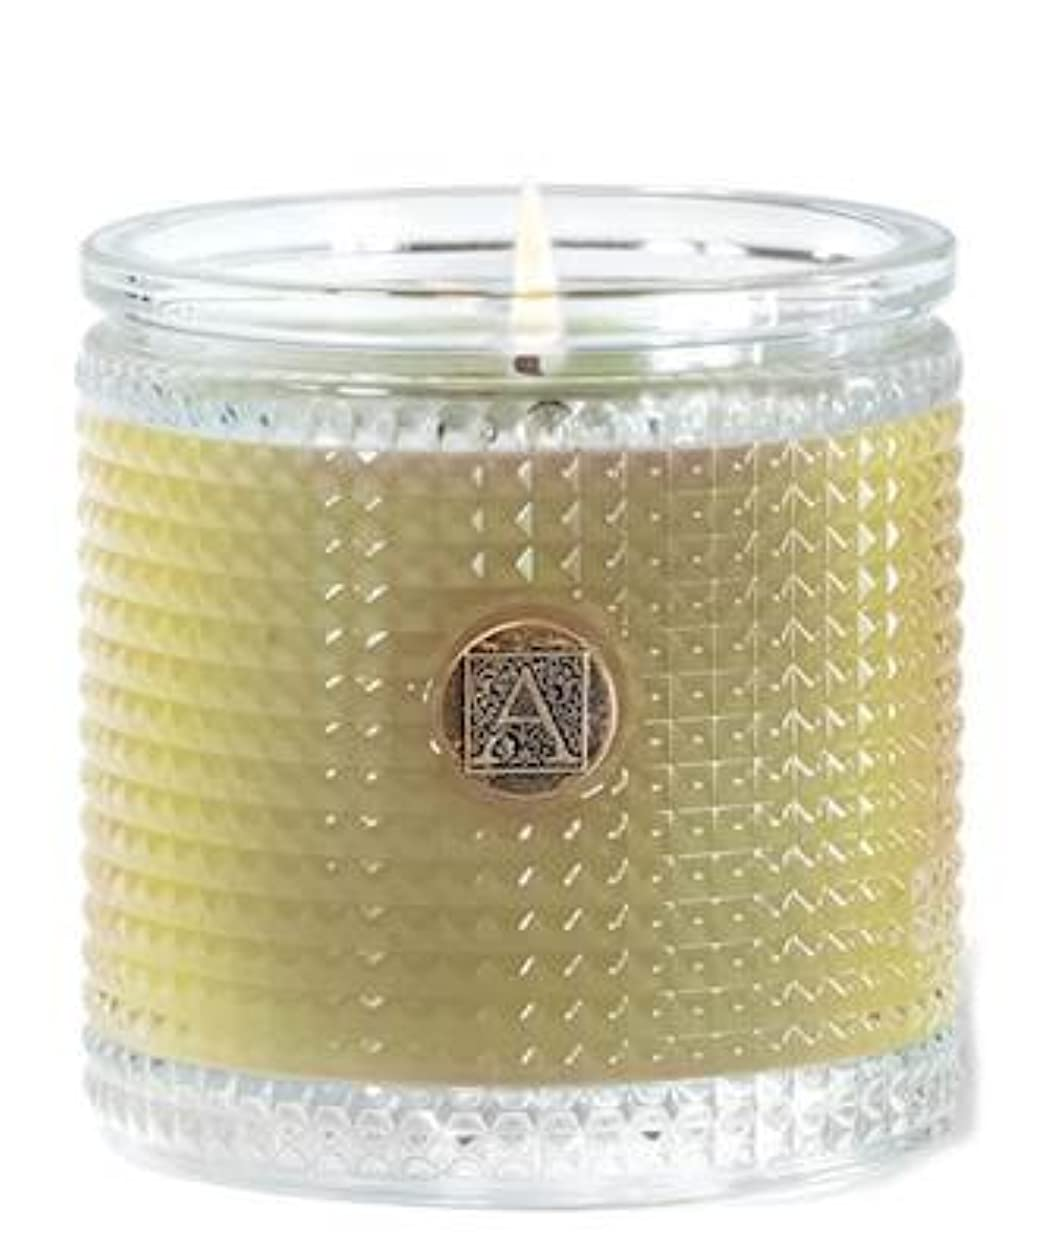 最大限かんたん佐賀Grapefruit Fandango 160ml Textured Glass Candle by Aromatique (1)